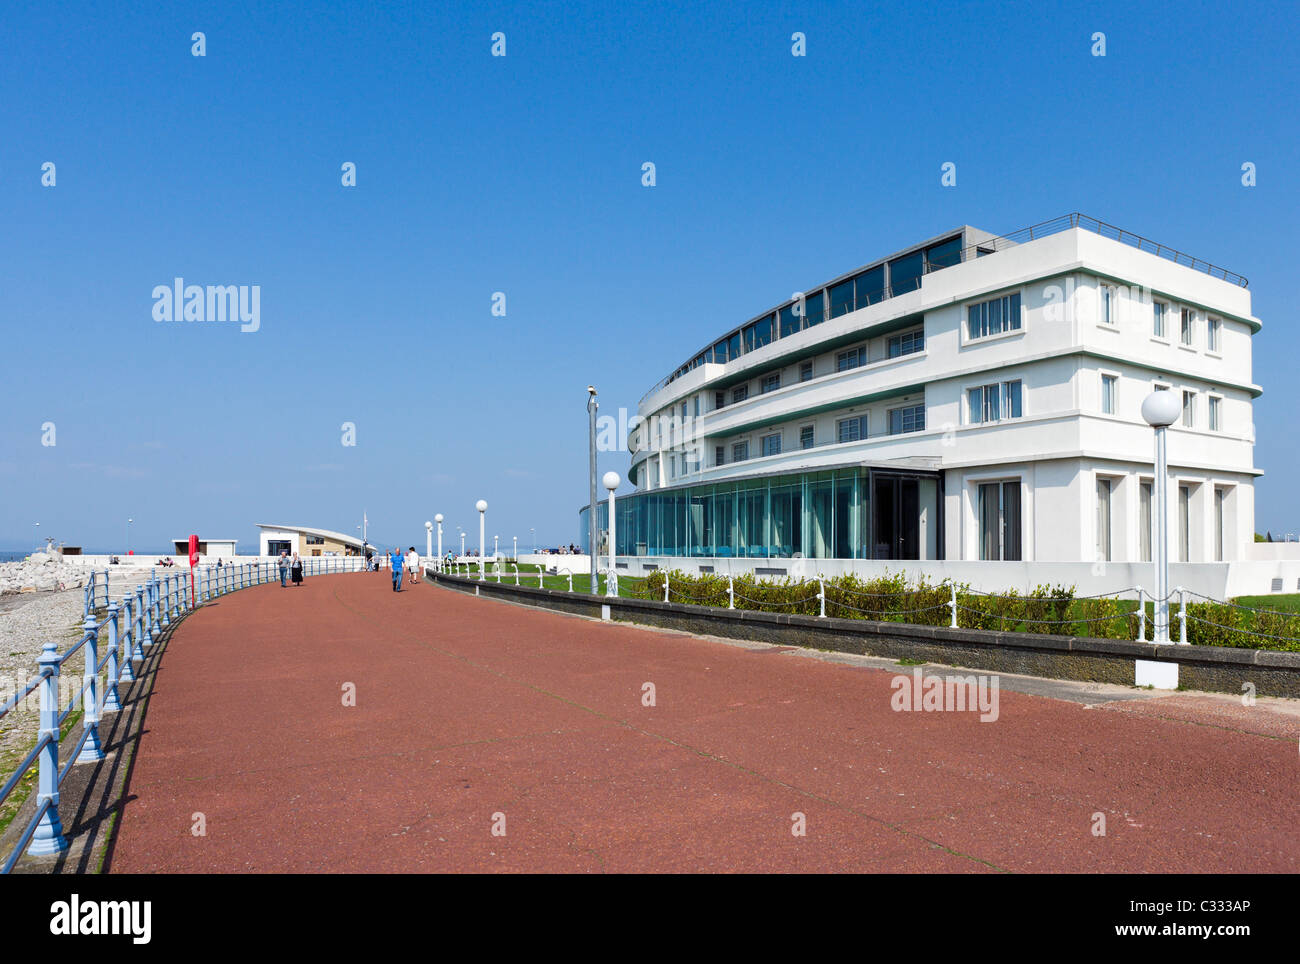 The recently renovated Art Deco Midland Hotel on the promenade in the seaside resort of Morecambe, Lancashire, UK - Stock Image